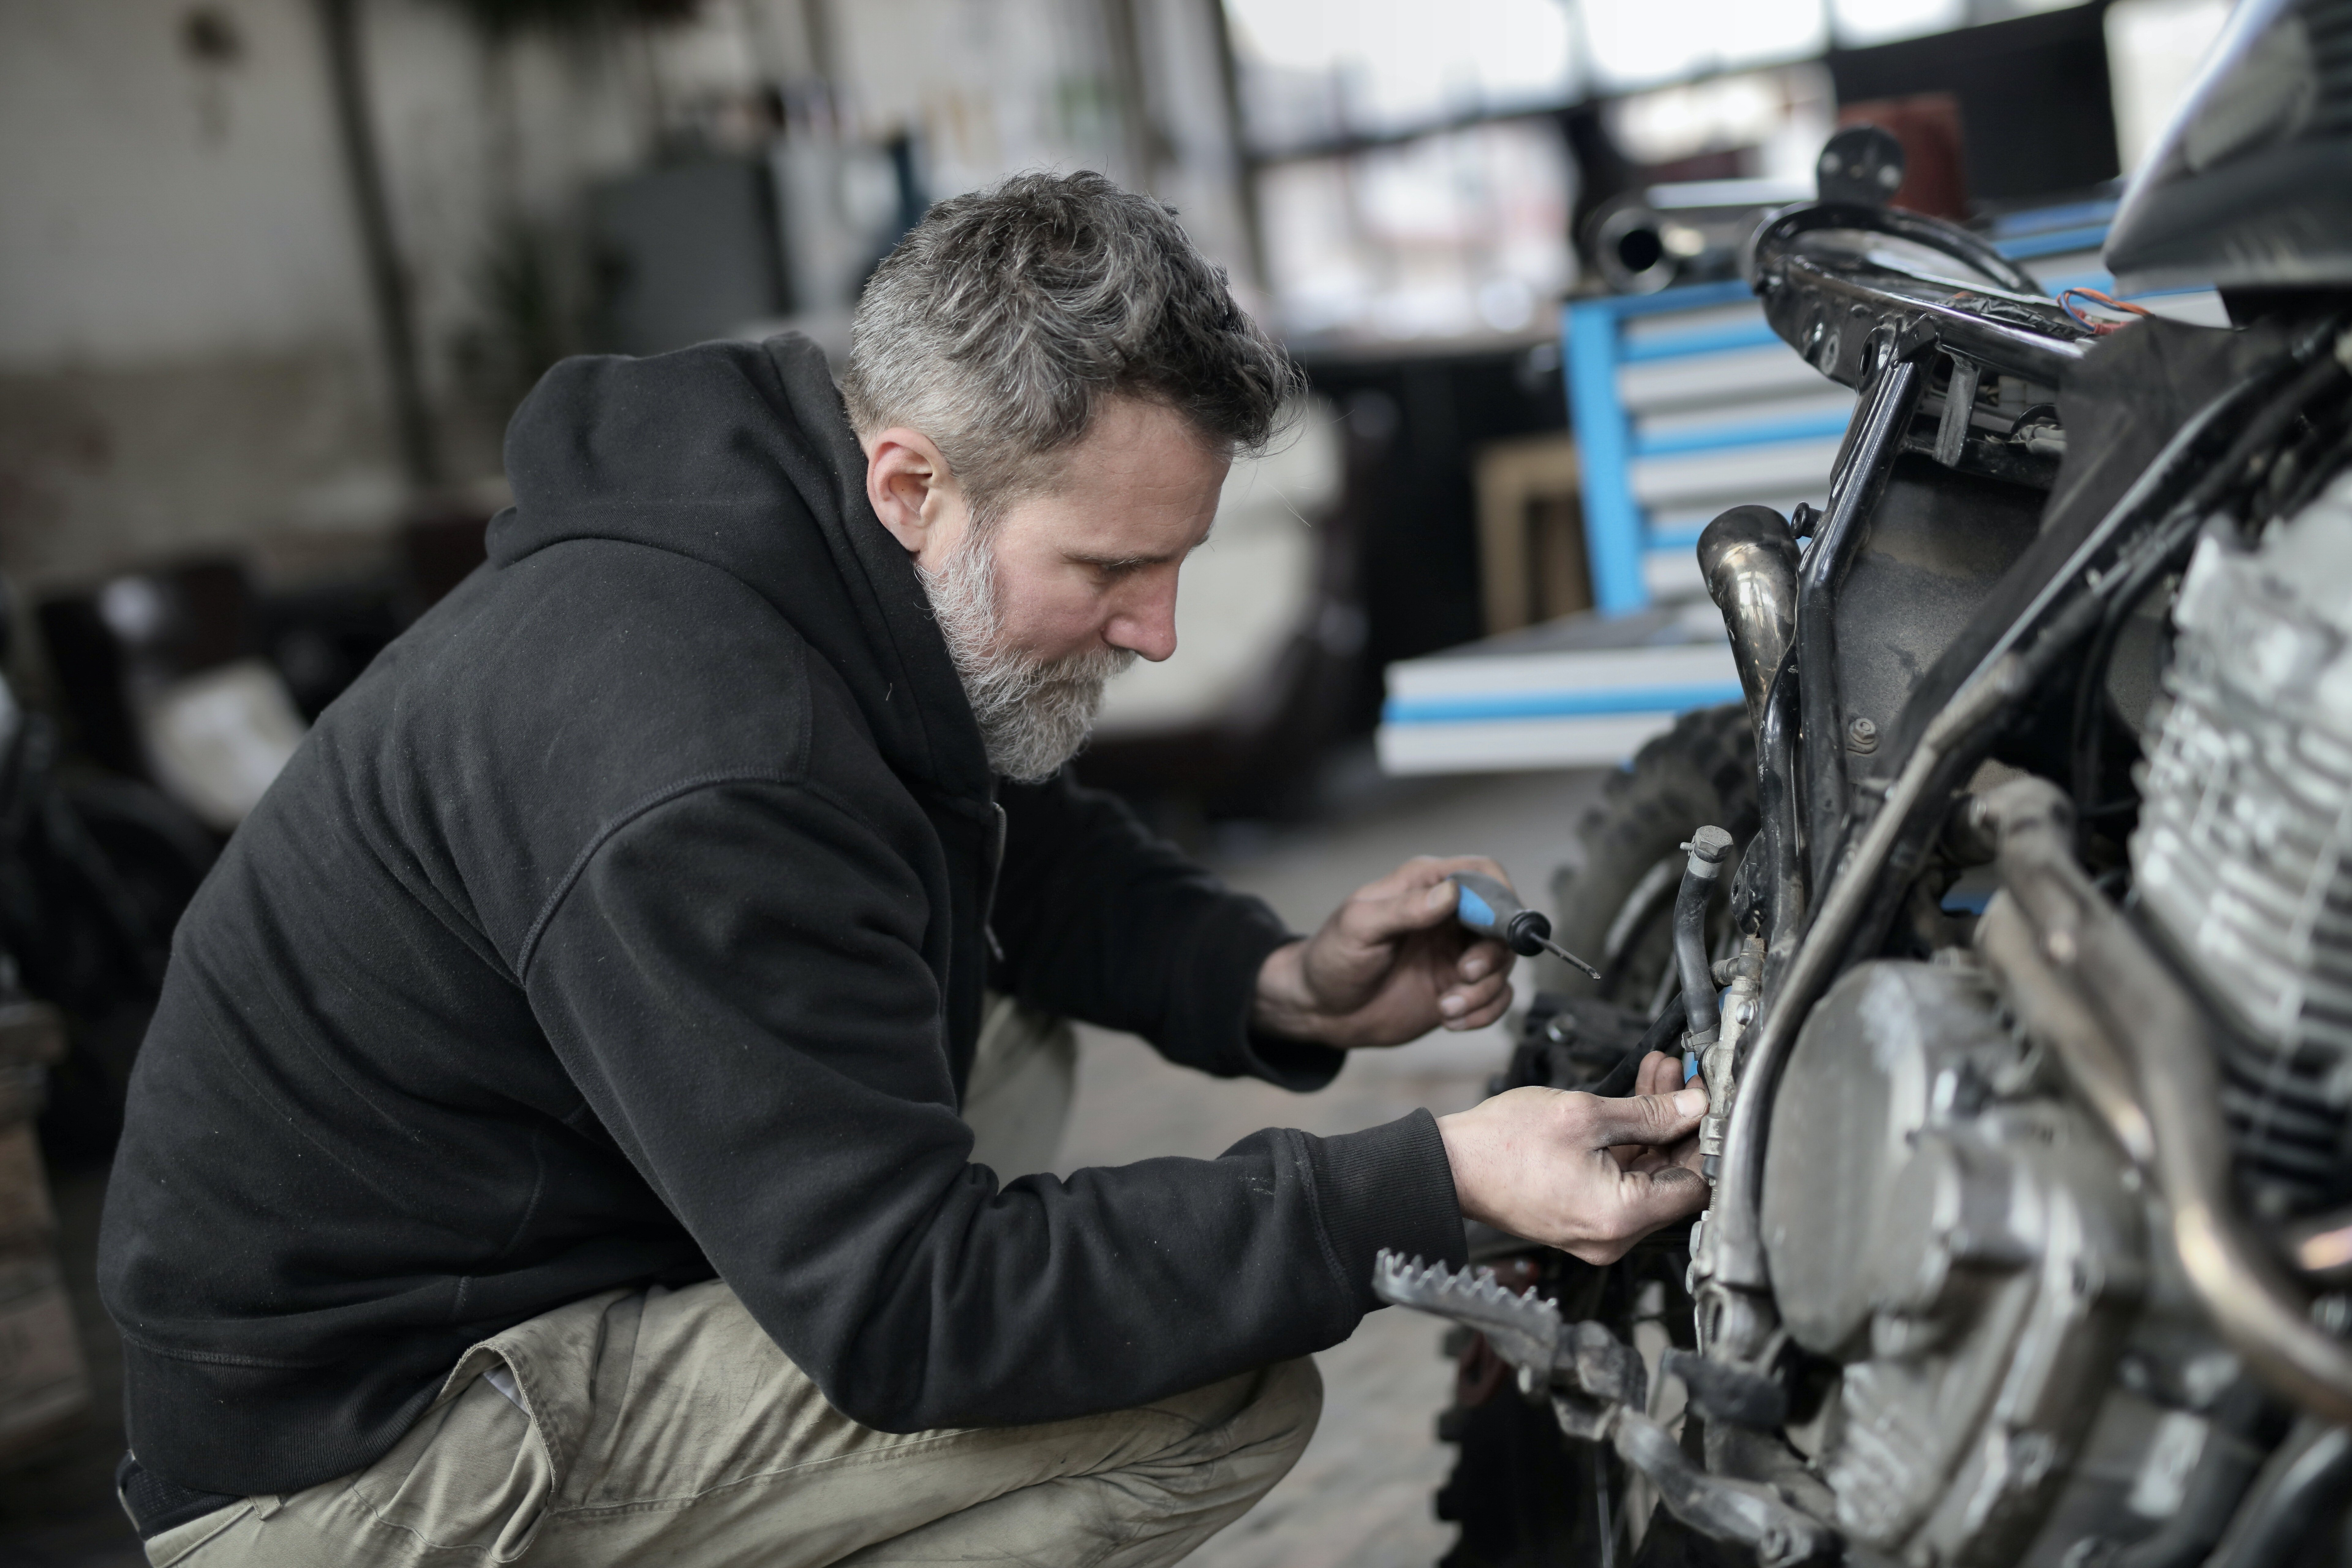 A bearded man fixing a motorcycle in a workshop. | Photo: Pexels/Andrea Piacquadio